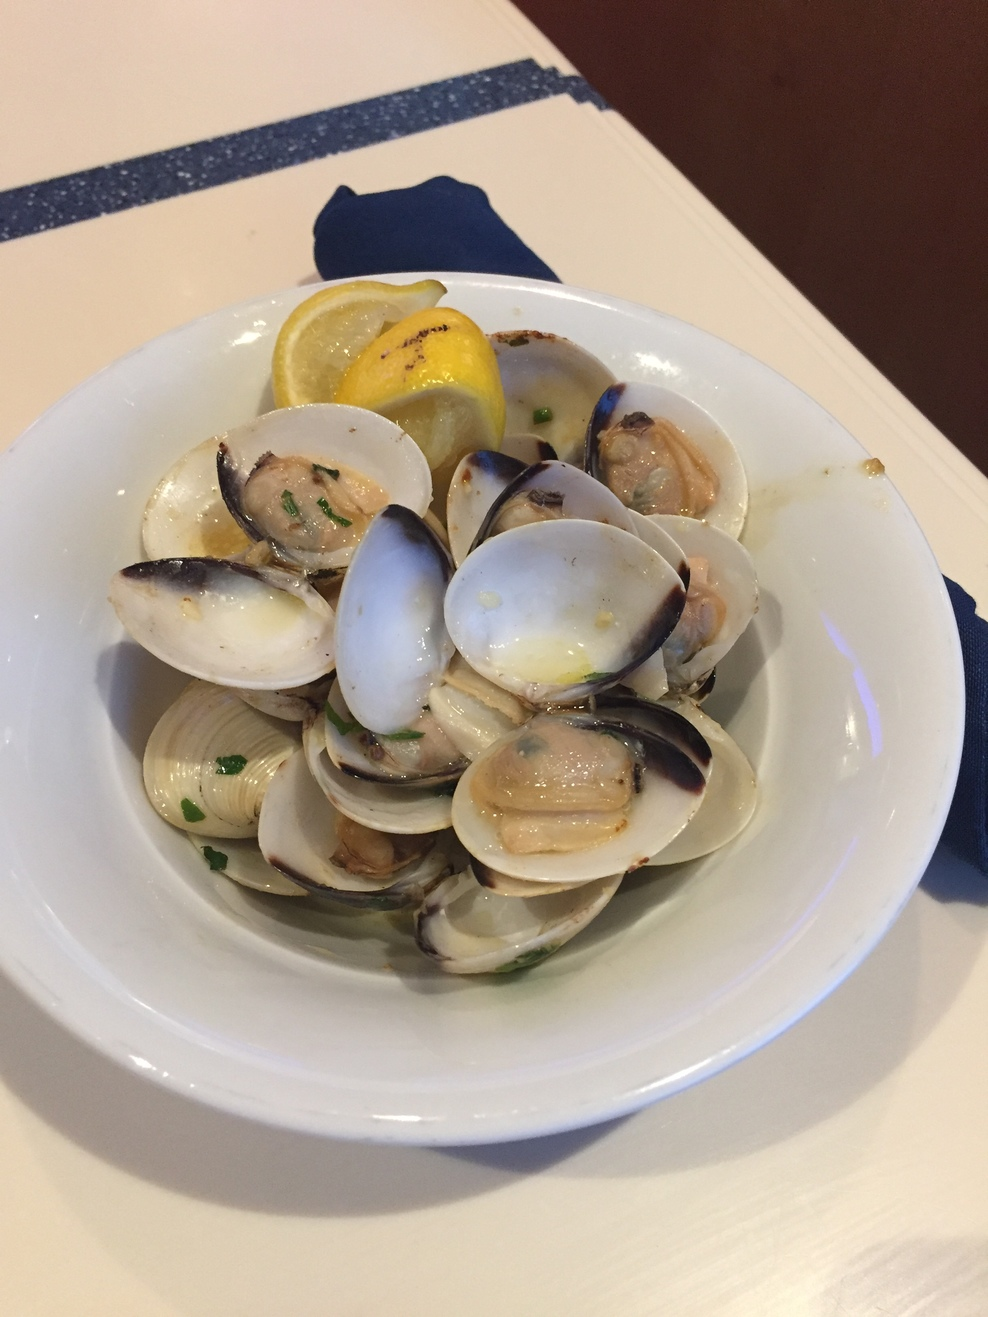 Clams at the buffet